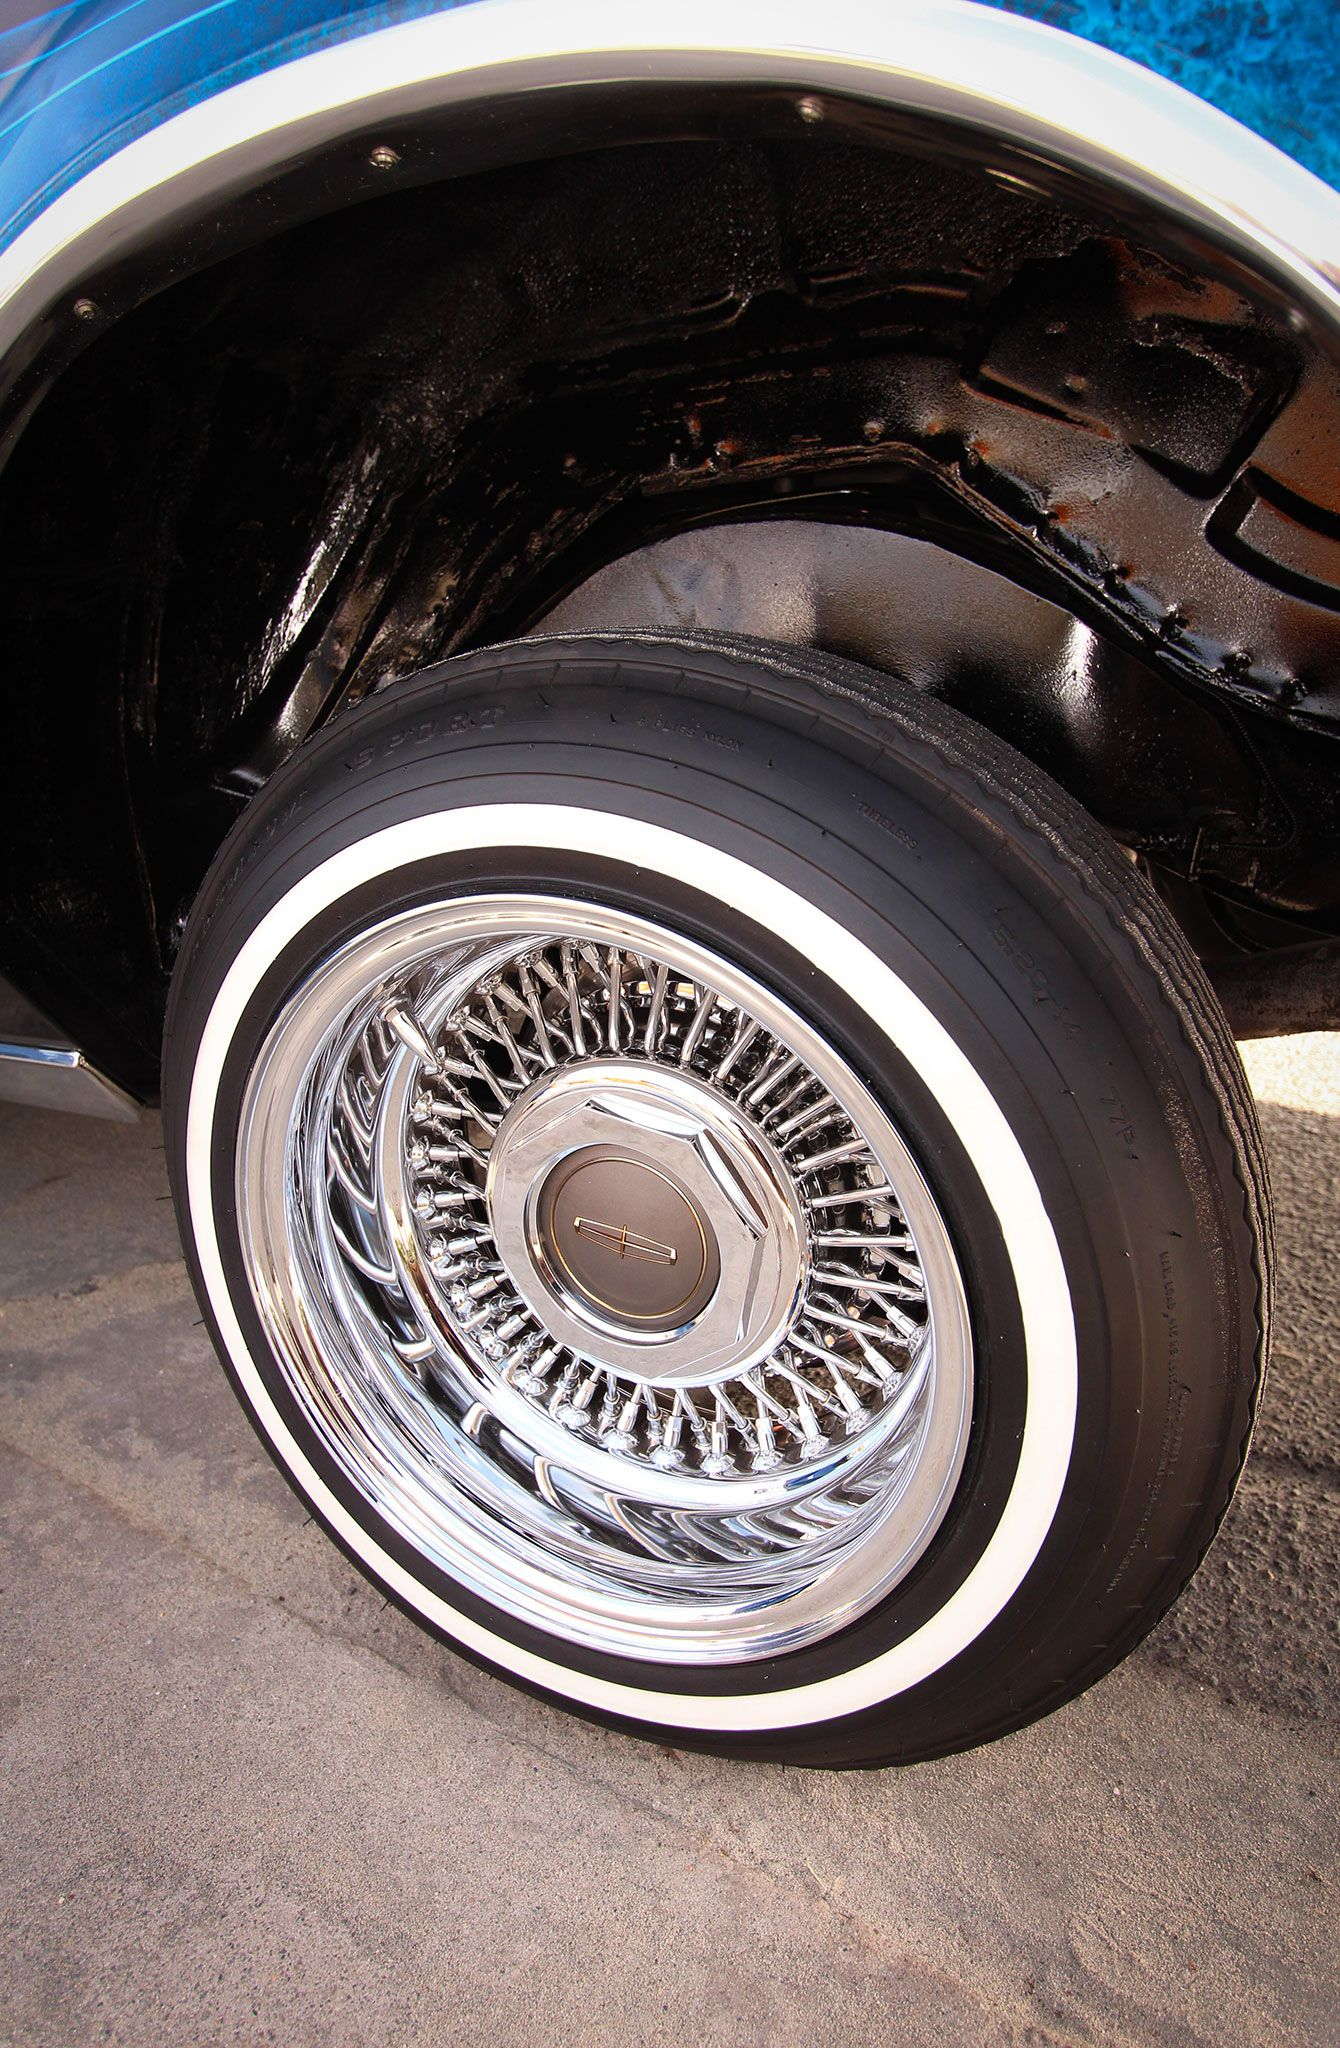 Lowrider rims 4 sale - 1979 Lincoln Mark V True Spoke Wire Wheel The Material Which I Can Produce Is Suitable For Different Flat Objects E G Cogs Casters Wheels